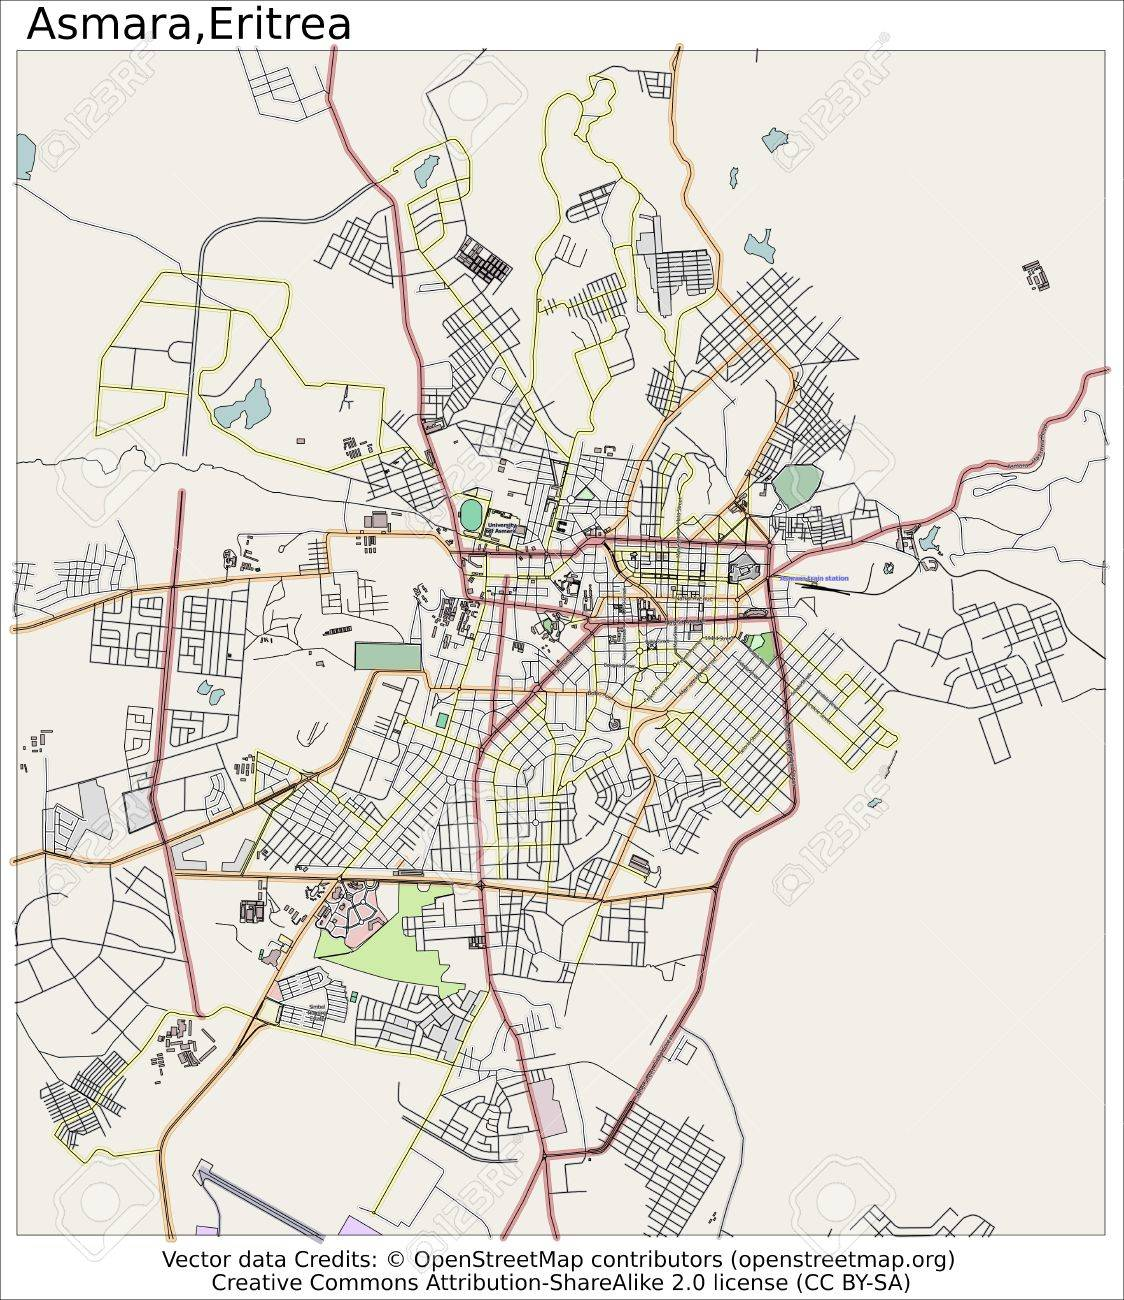 Map of Asmara